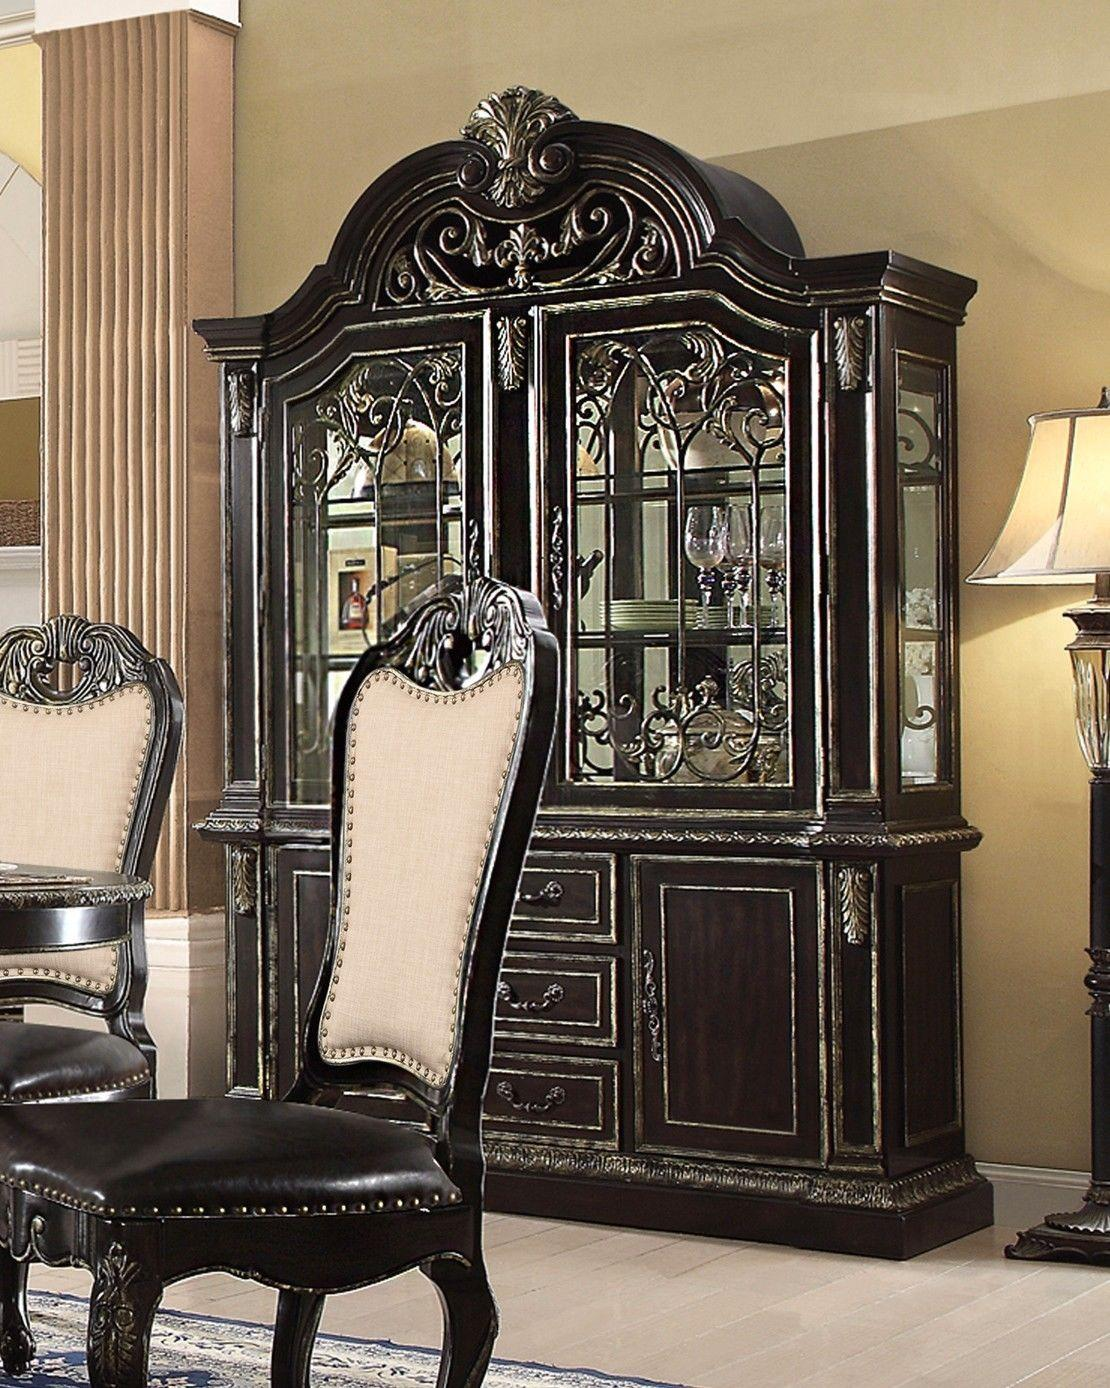 McFerran D5188-HH D5188-HB Ebony Gold Gothic Style 2-door Lighted China Cabinet by